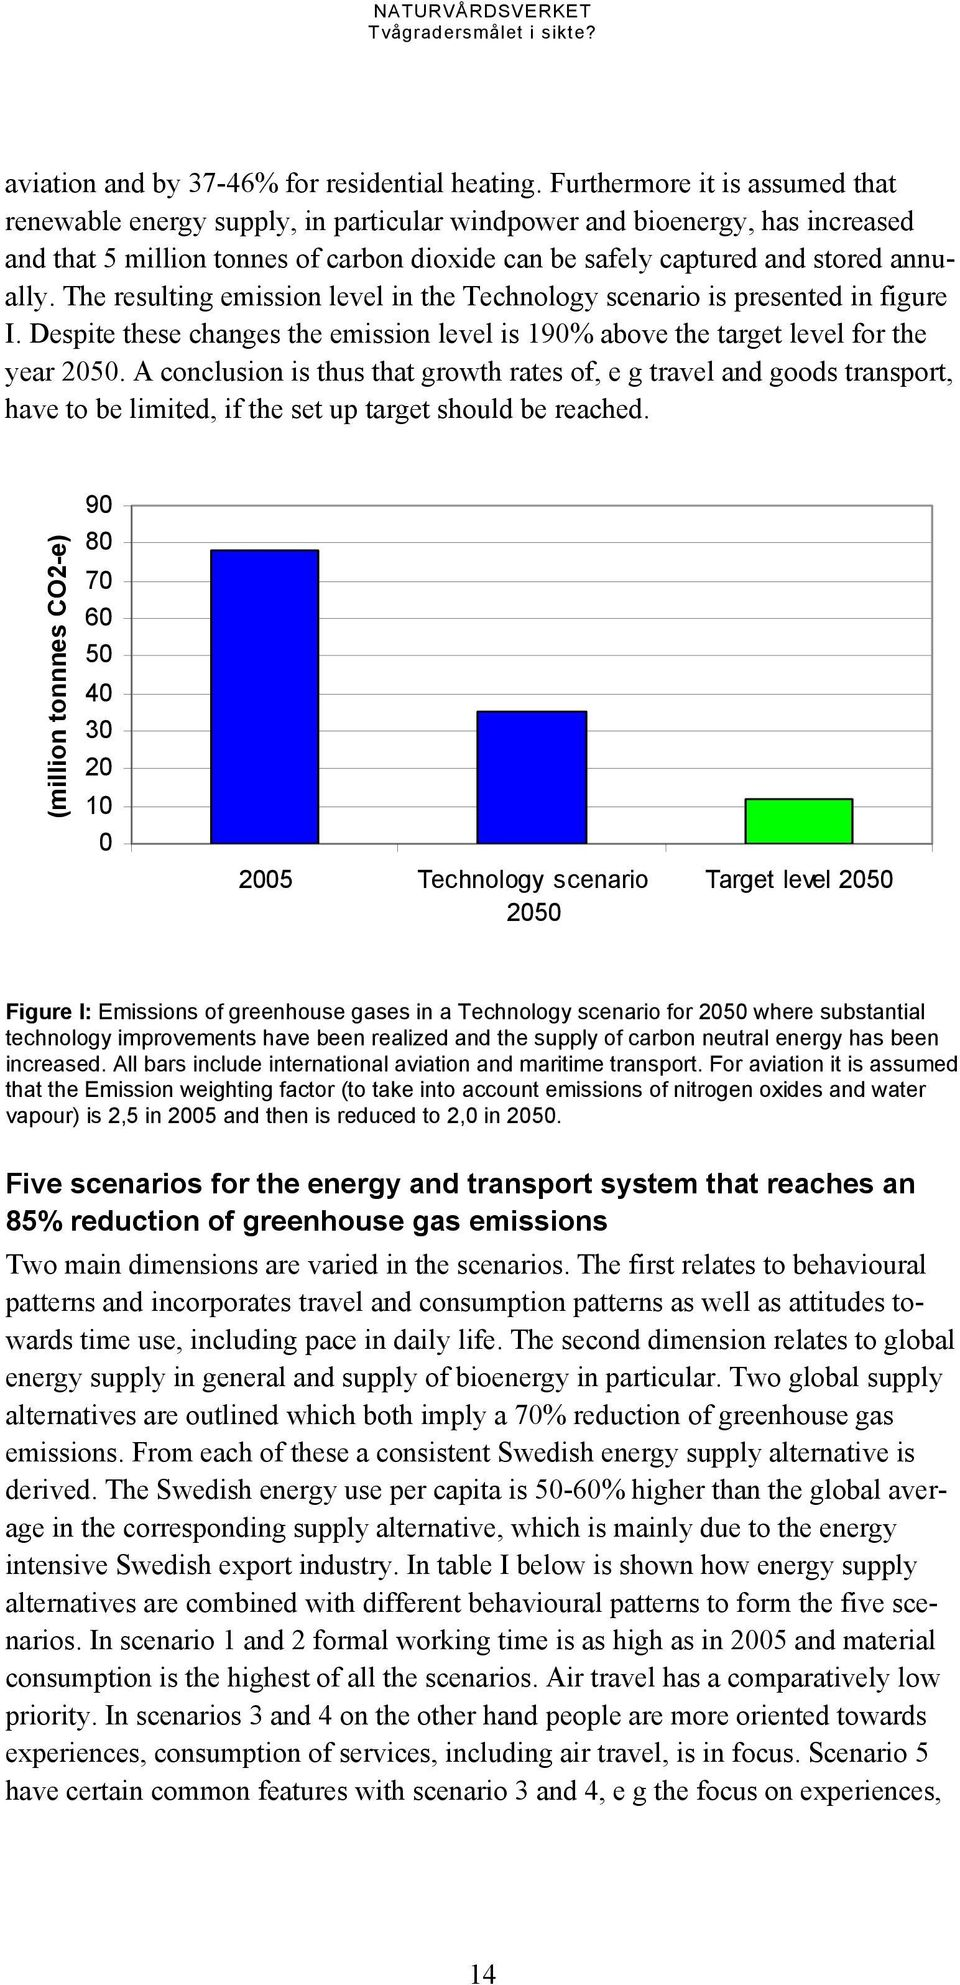 The resulting emission level in the Technology scenario is presented in figure I. Despite these changes the emission level is 190% above the target level for the year 2050.